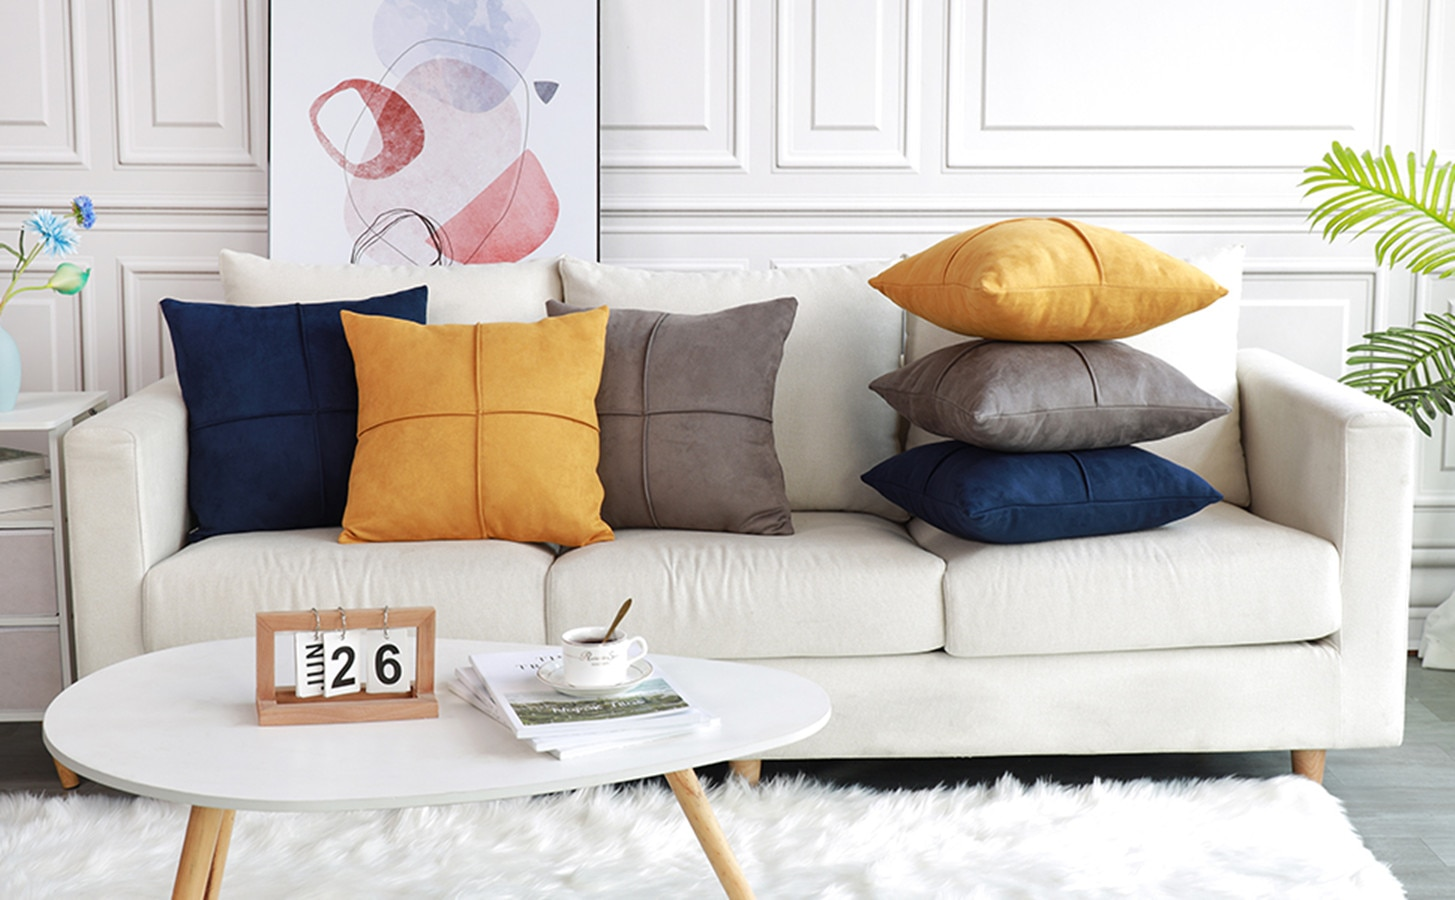 Suede Throw Cushion Cover Splice Pillow Case Square Cross Pattern Pillow Cover Home Decorative For Sofa Couch Bed Pillowcase stylish seabed landscape fish pattern square shape flax pillowcase without pillow inner